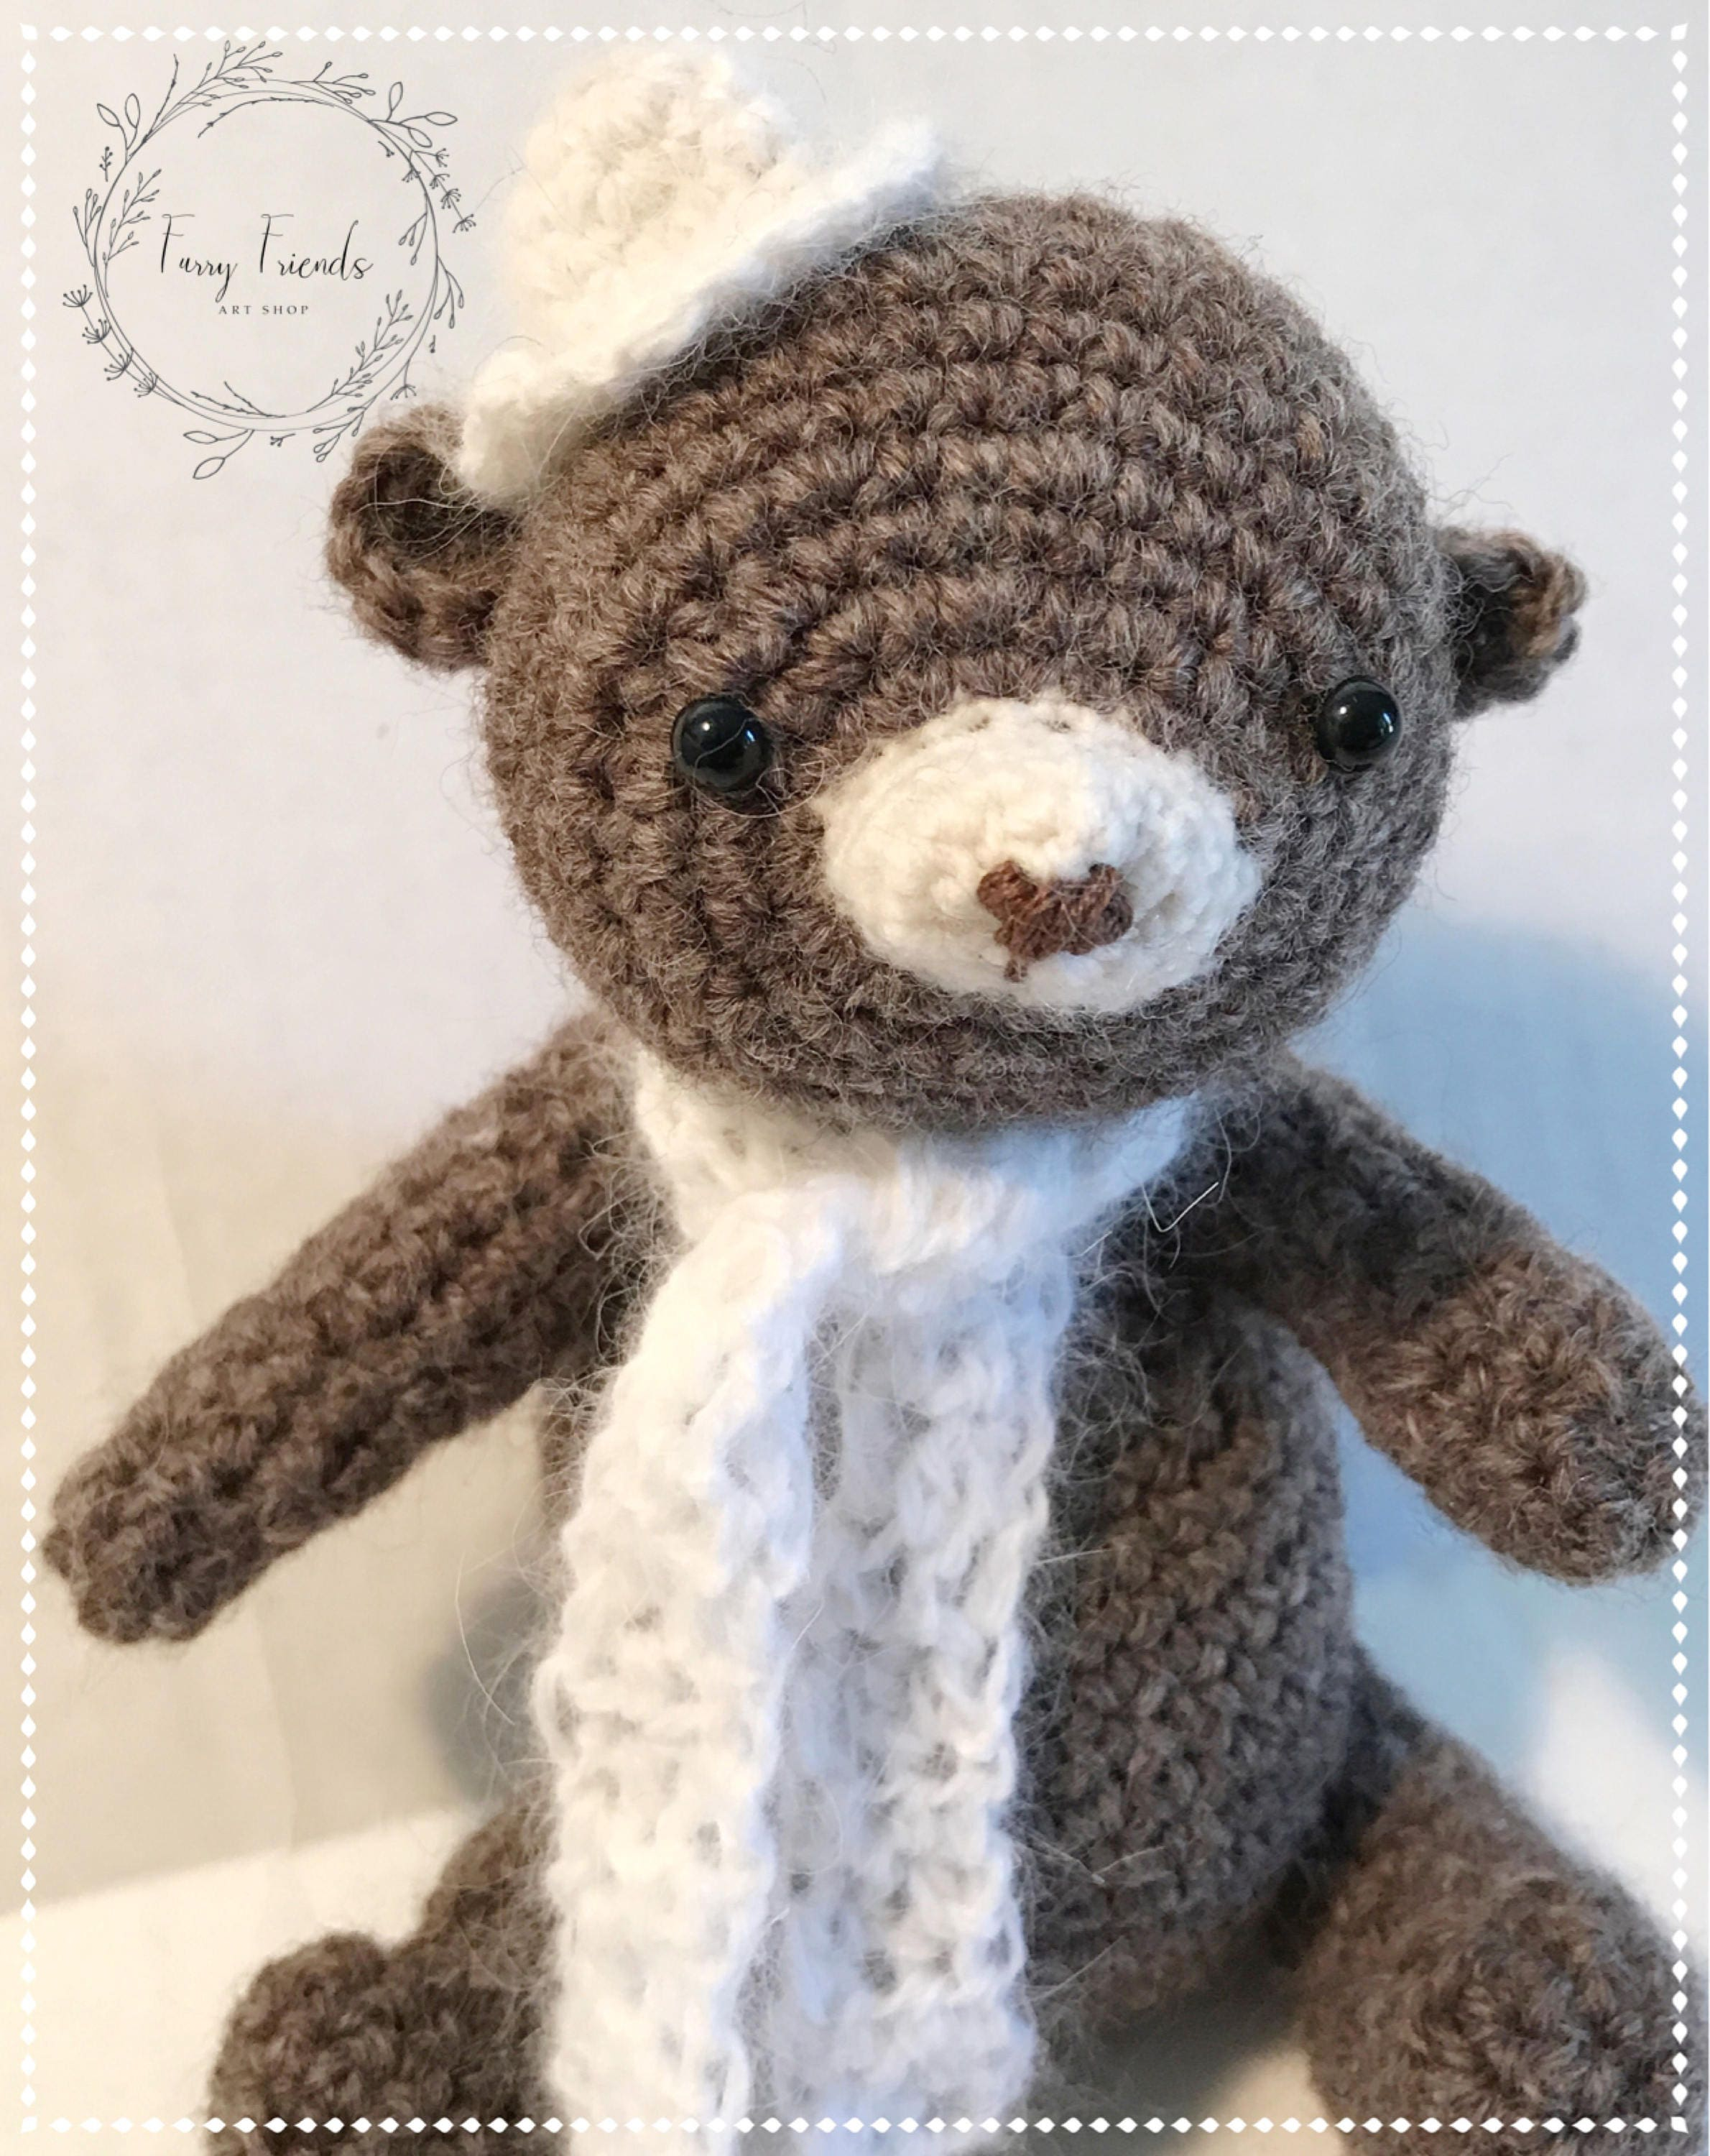 Teddy Bear Crocheted Stuffed Animal With White Angora Hat and Scarf